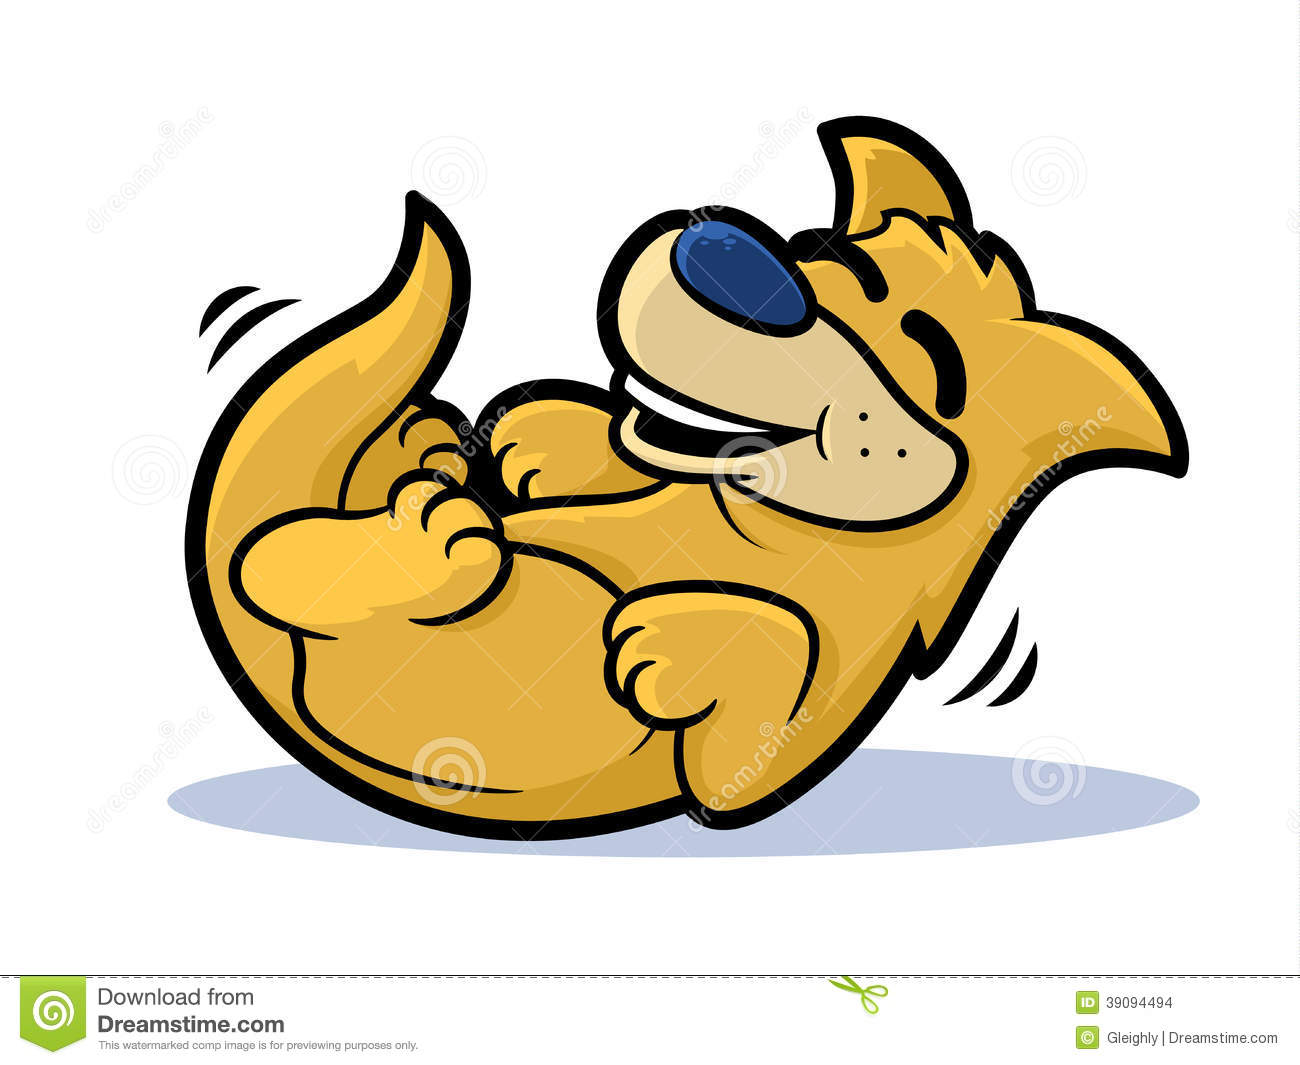 laughing dog clip art - photo #6